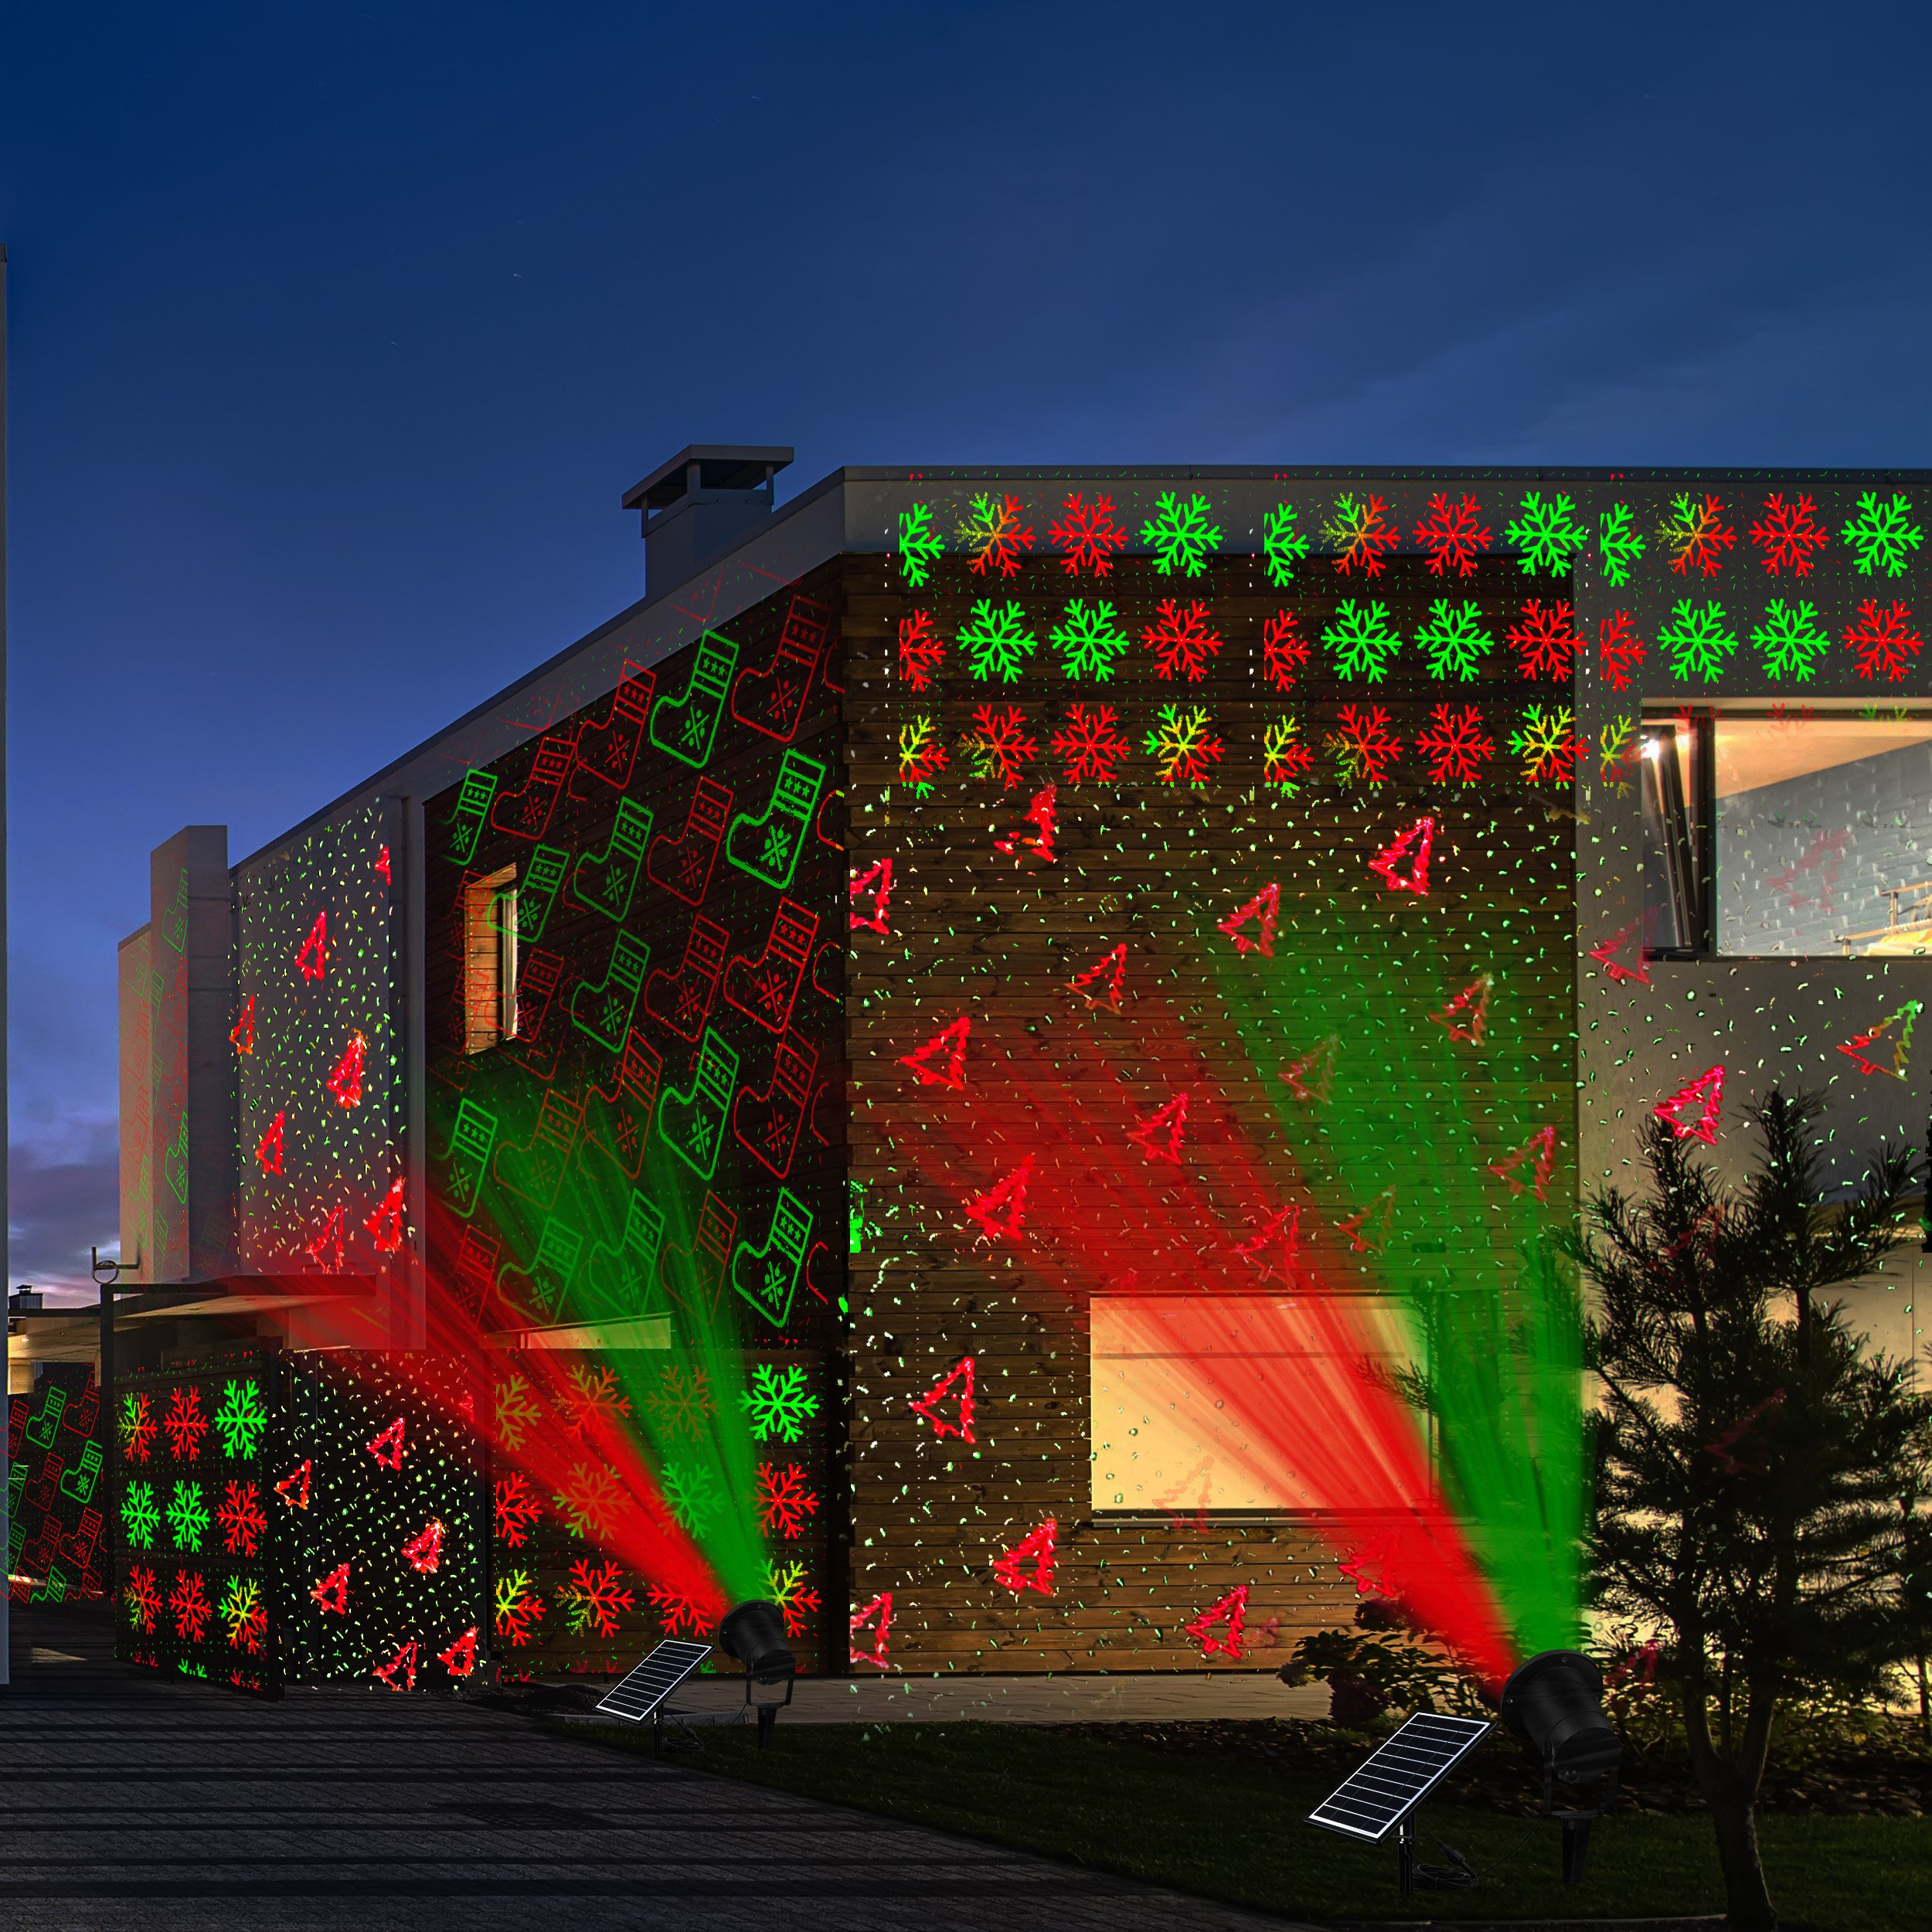 xmas and red patterns laser different lasers via co led garden light projector green lighting ltd technology lights outdoor sparks